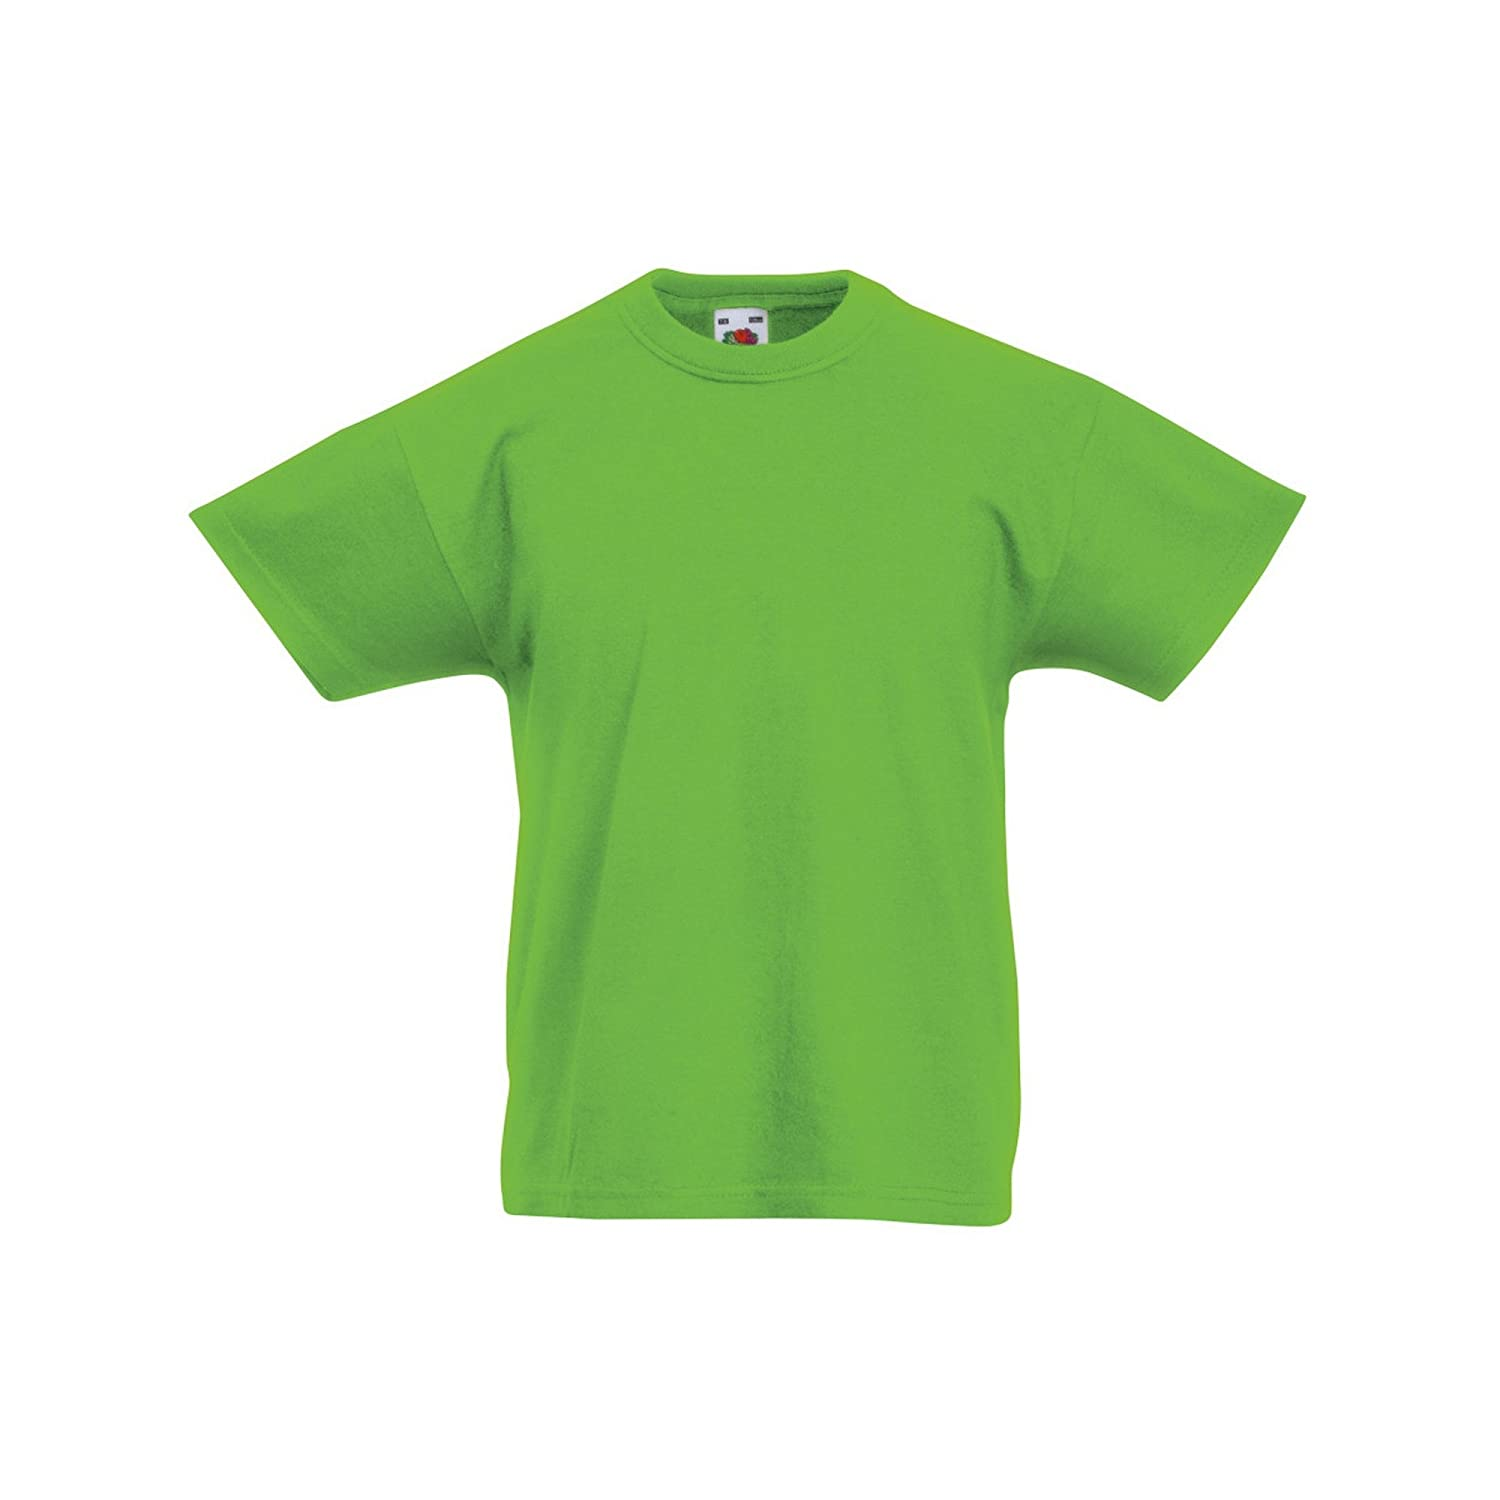 Fruit of the Loom Childrens//Kids Original Short Sleeve T-Shirt